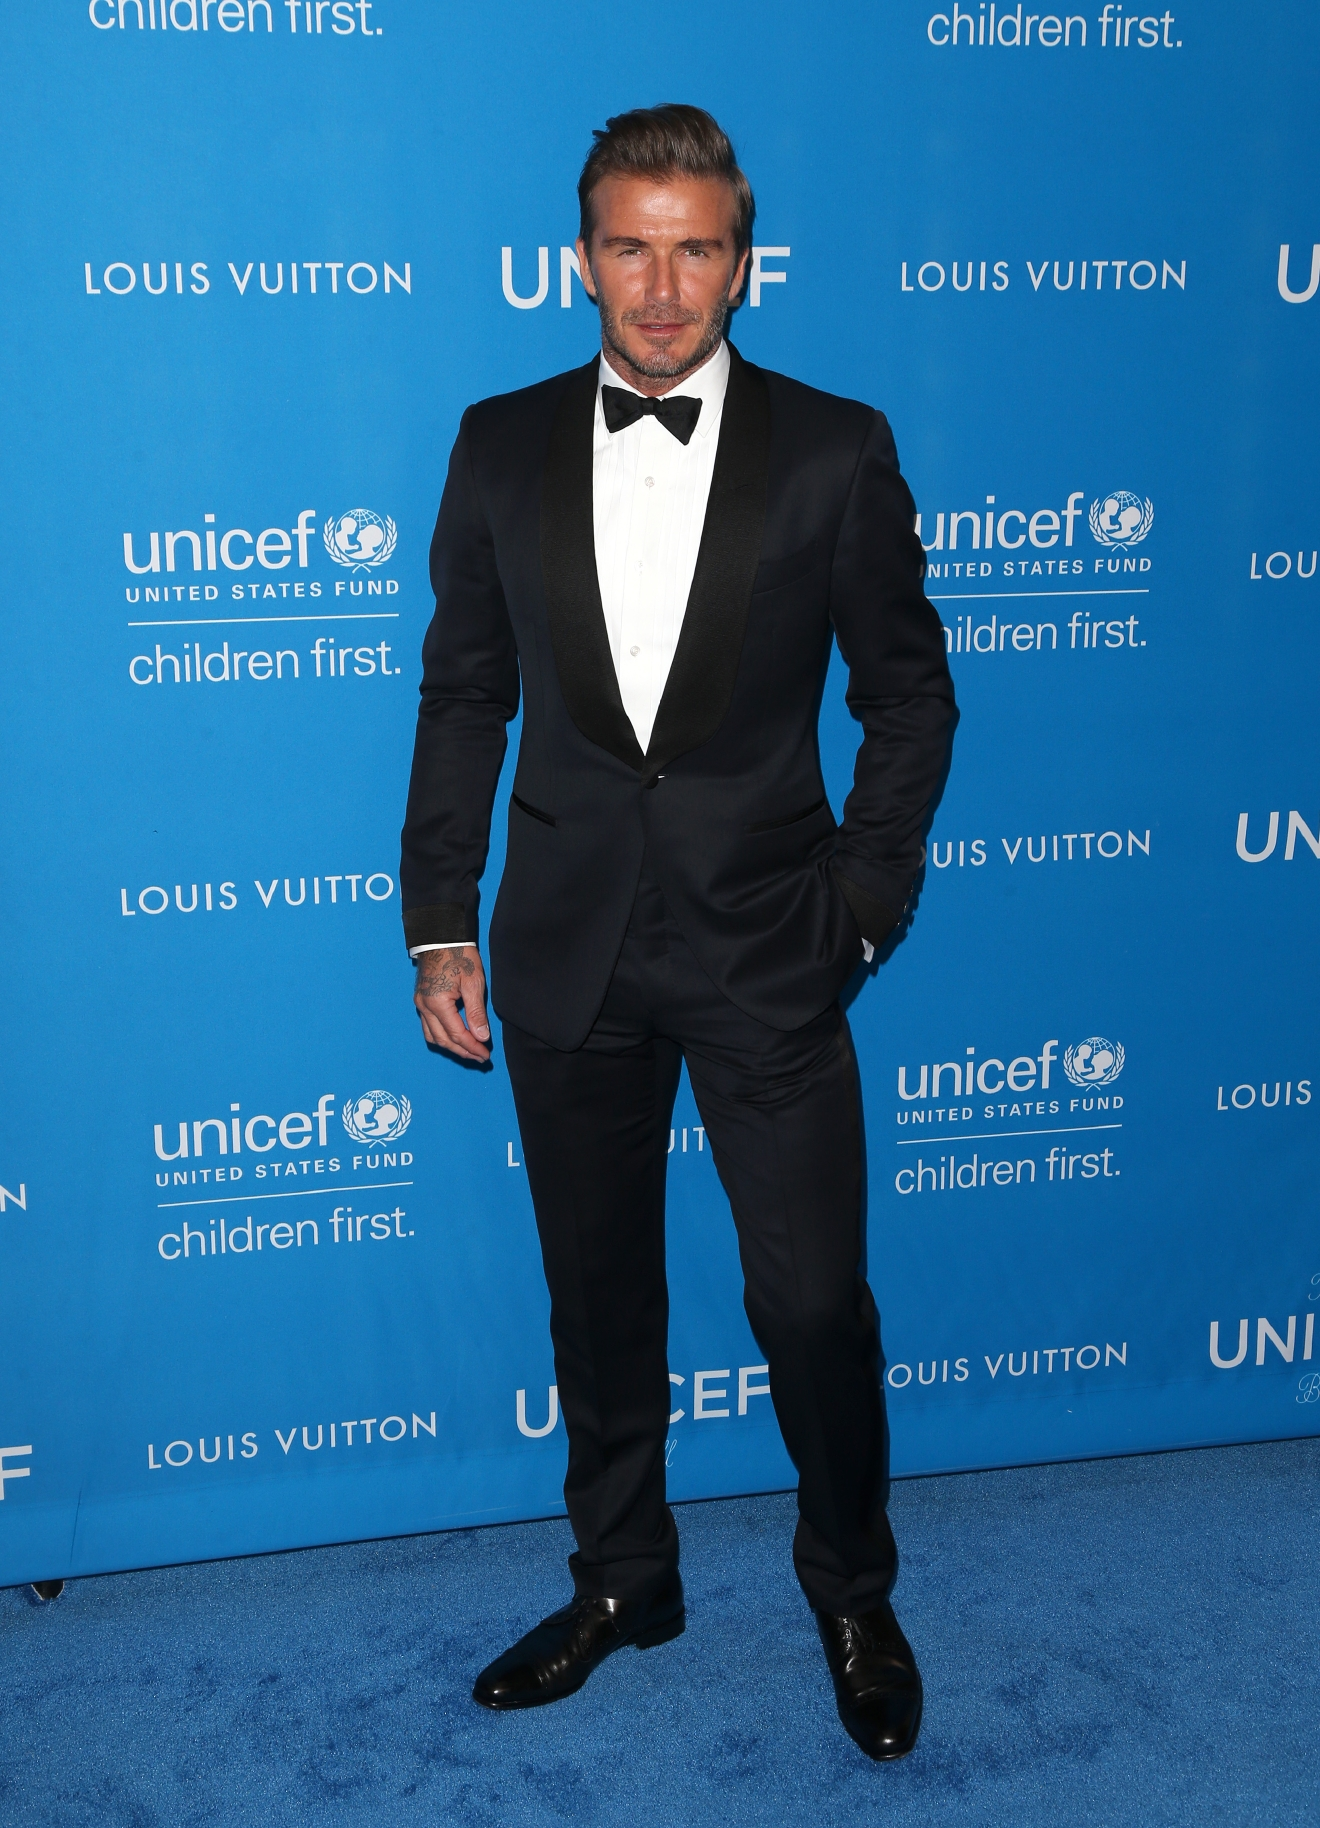 6th Annual UNICEF Ball at the Beverly Wilshire Hotel, Beverly Hills - Arrivals  Featuring: David Beckham Where: Beverly Hills, California, United States When: 12 Jan 2016 Credit: FayesVision/WENN.com